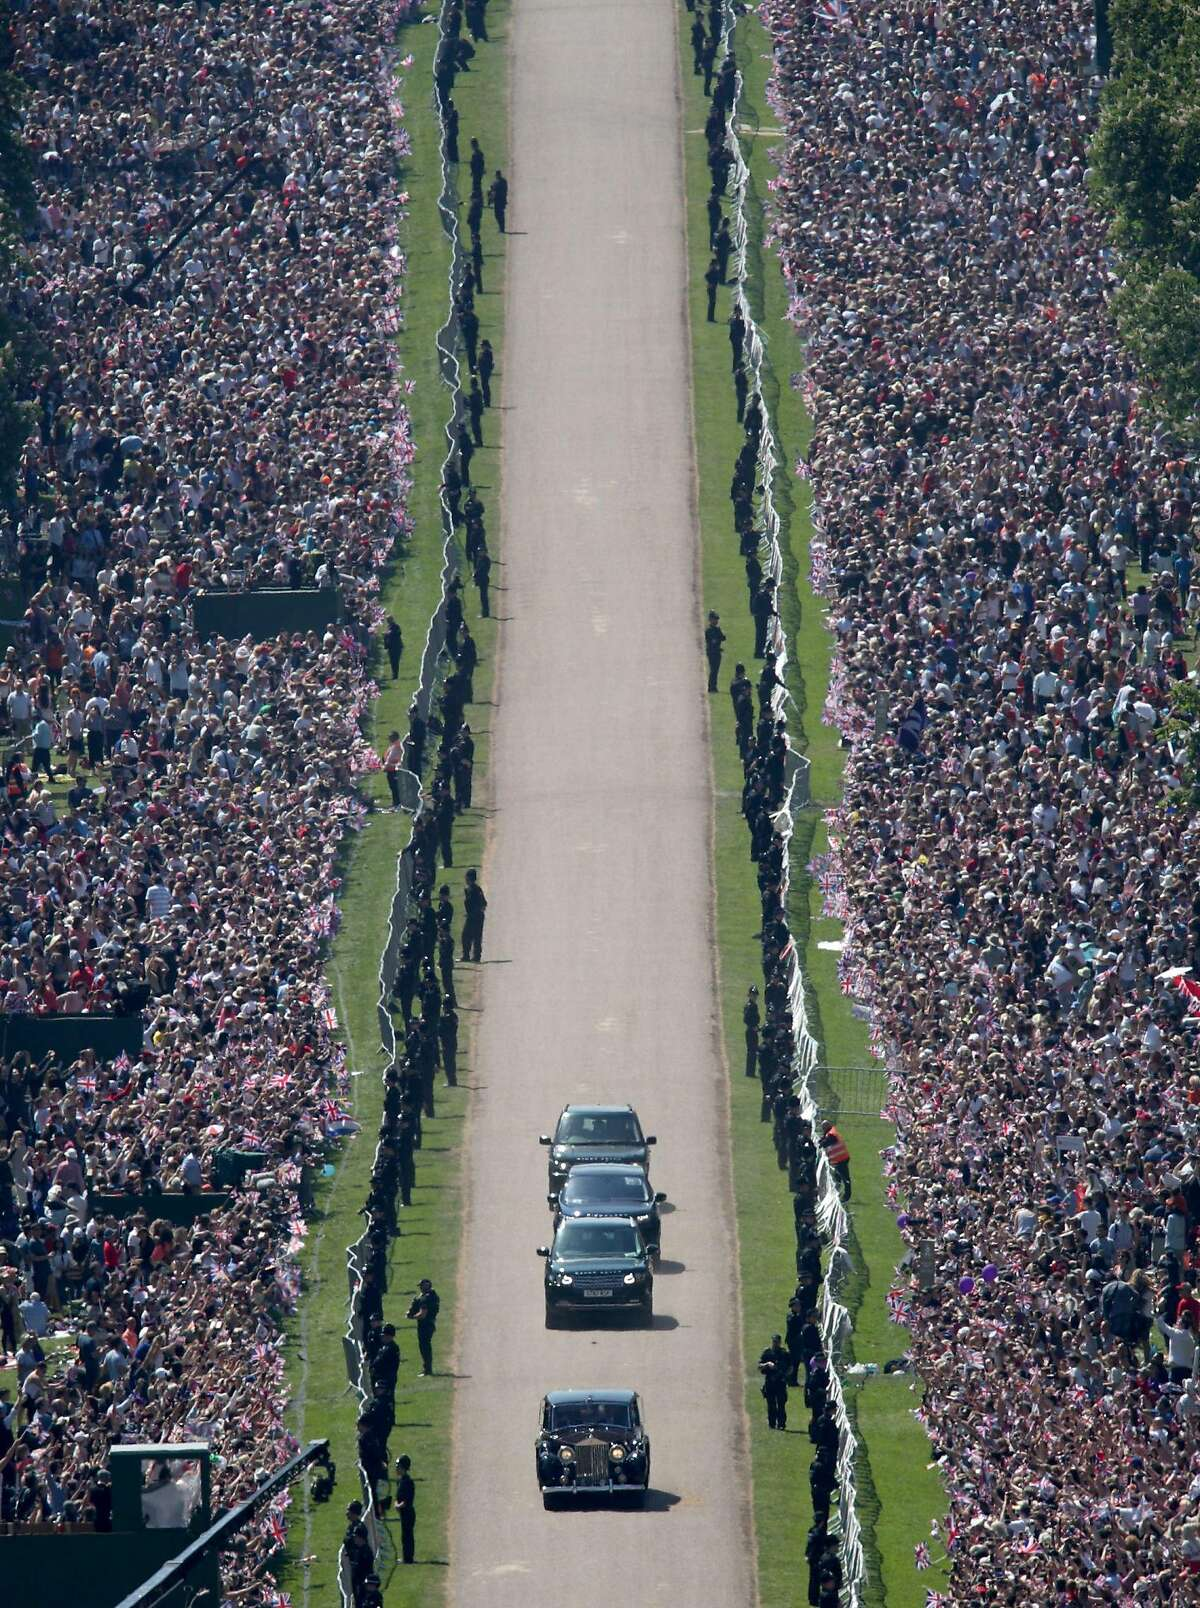 Meghan Markle and her mother, Doria Ragland, are driven along the Long Walk as they arrive for her wedding ceremony to marry Britain's Prince Harry, Duke of Sussex, at St George's Chapel, Windsor Castle, in Windsor, on May 19, 2018.